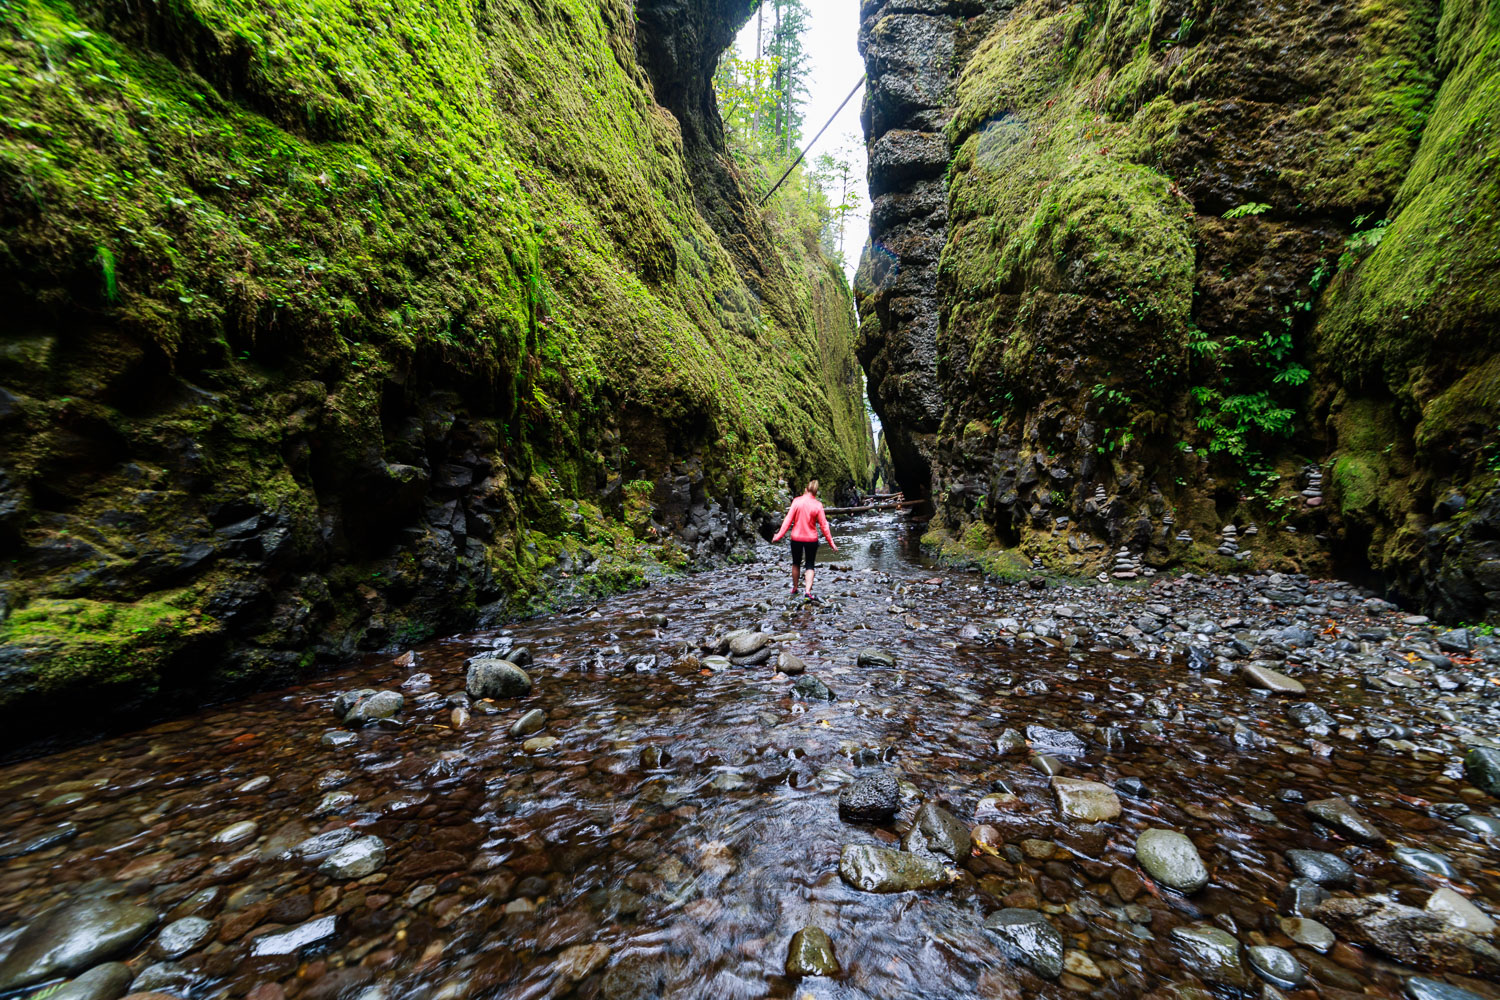 Hiking in the amazing Oneonta Gorge surrounded by 25 Million year old Basalt walls covered in moss.